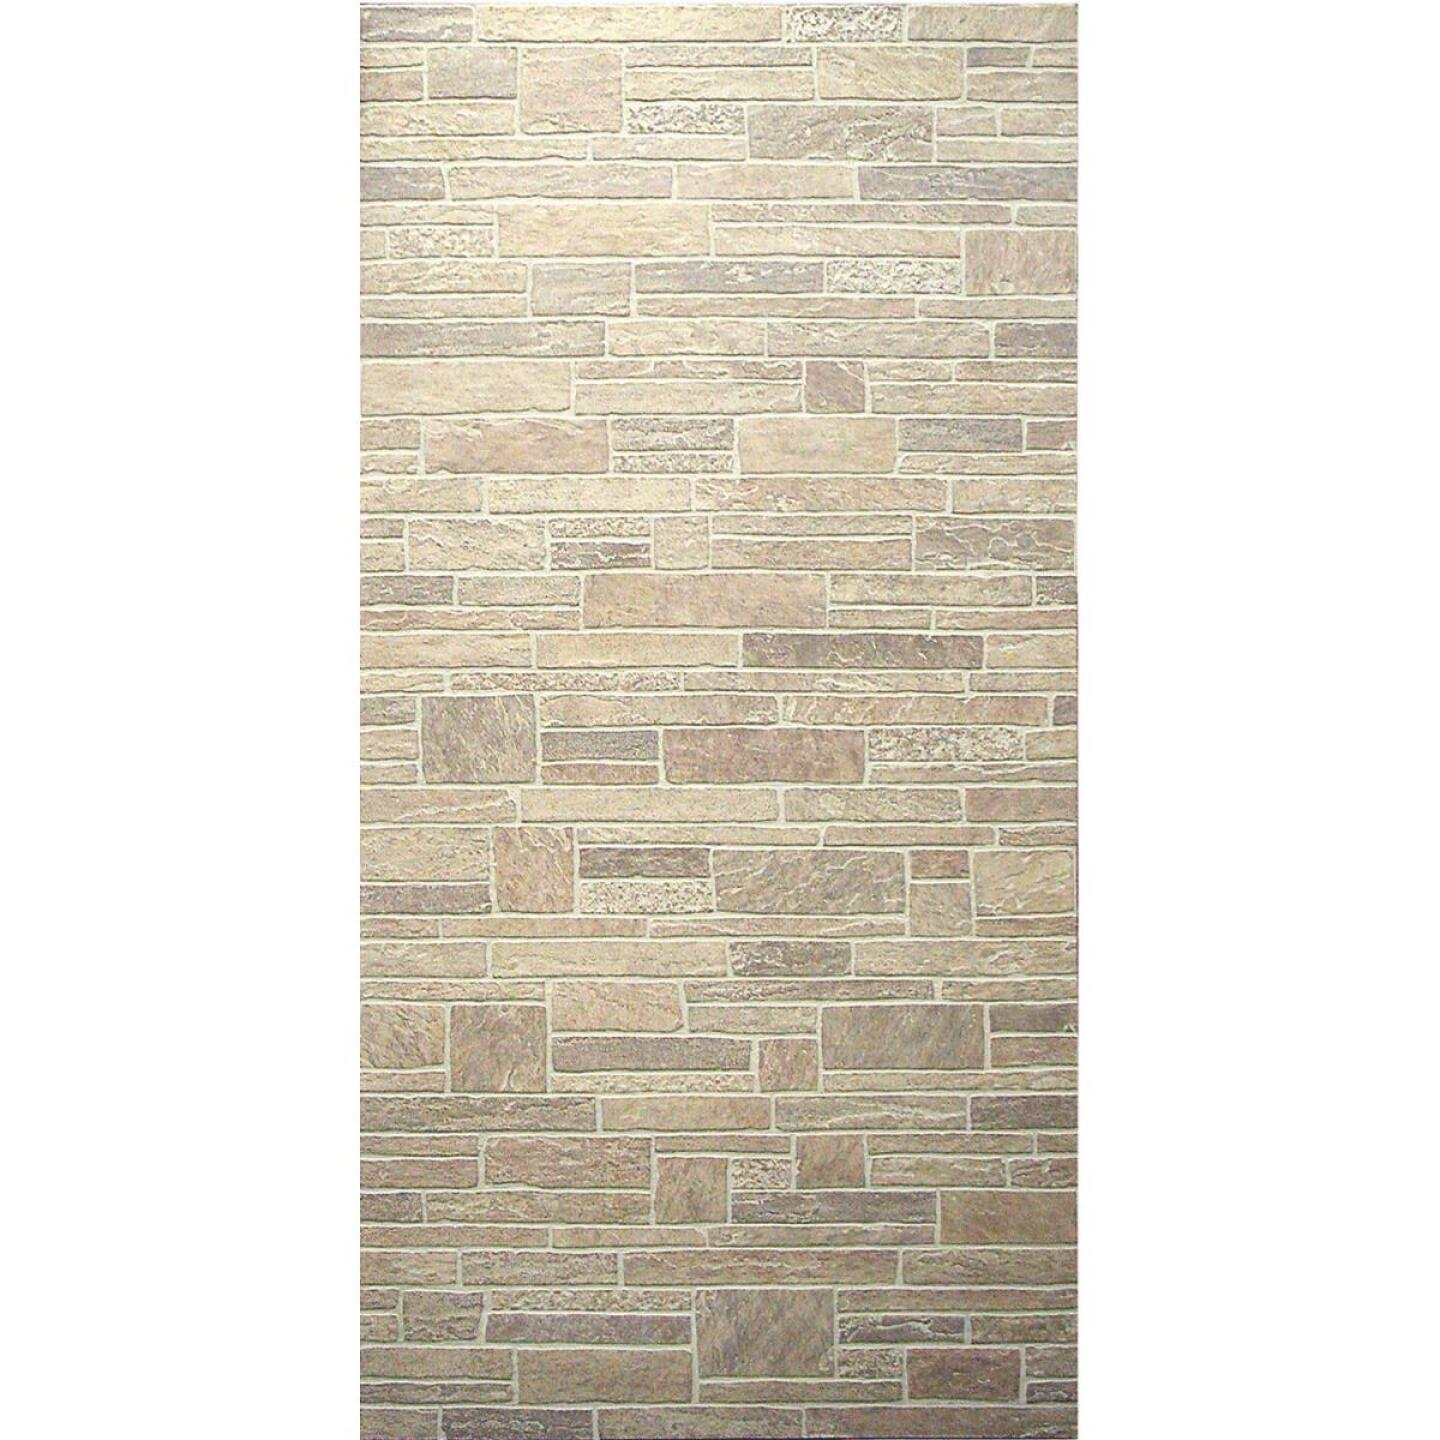 DPI 4 Ft. x 8 Ft. x 1/4 In. Beige Canyon Stone Wall Paneling Image 1